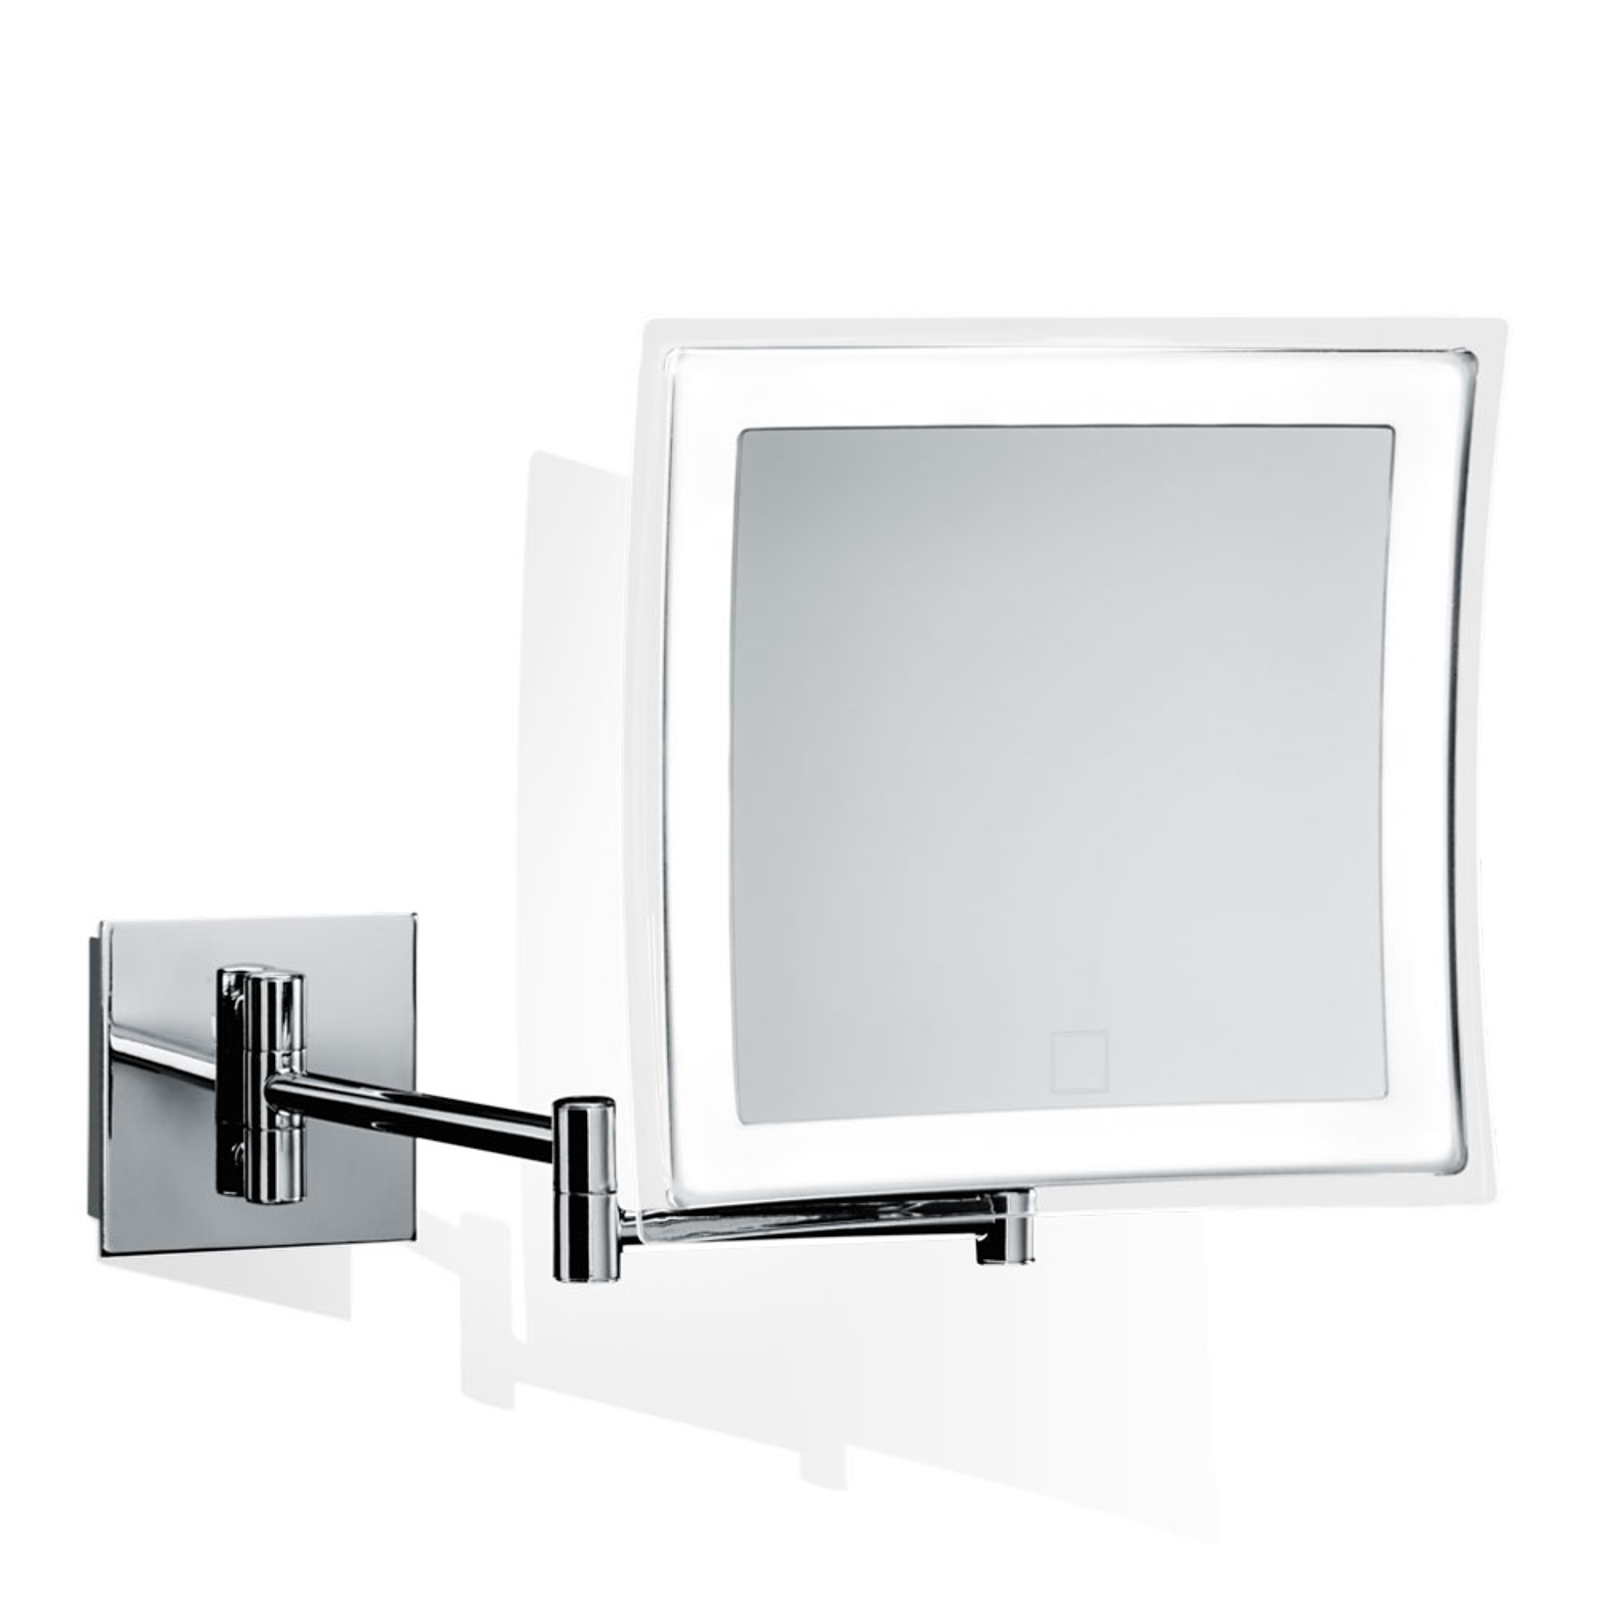 Decor Walther BS 84 Touch espejo pared LED táctil